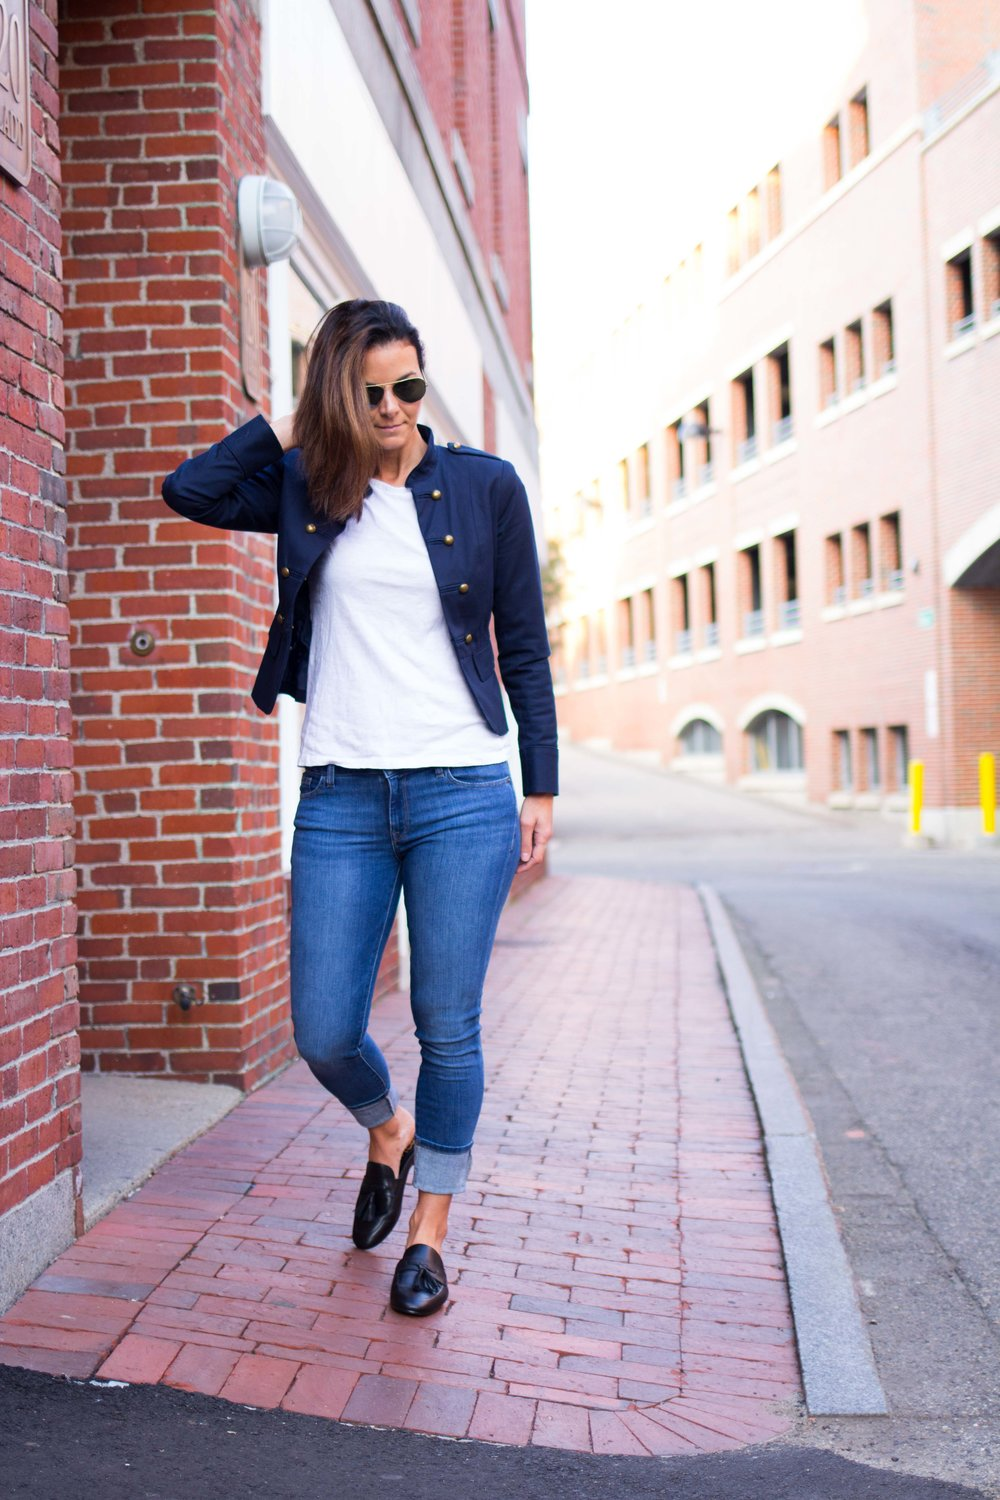 Fall  Outfits – Military Jacket Outfit – Spring Outfit – Casual Outfits – Casual Friday Outfit – Weekend Outfits - Fashion for Women – Tassel Loafer Mules -  heartandseam.com  #heartandseam #militaryjacket